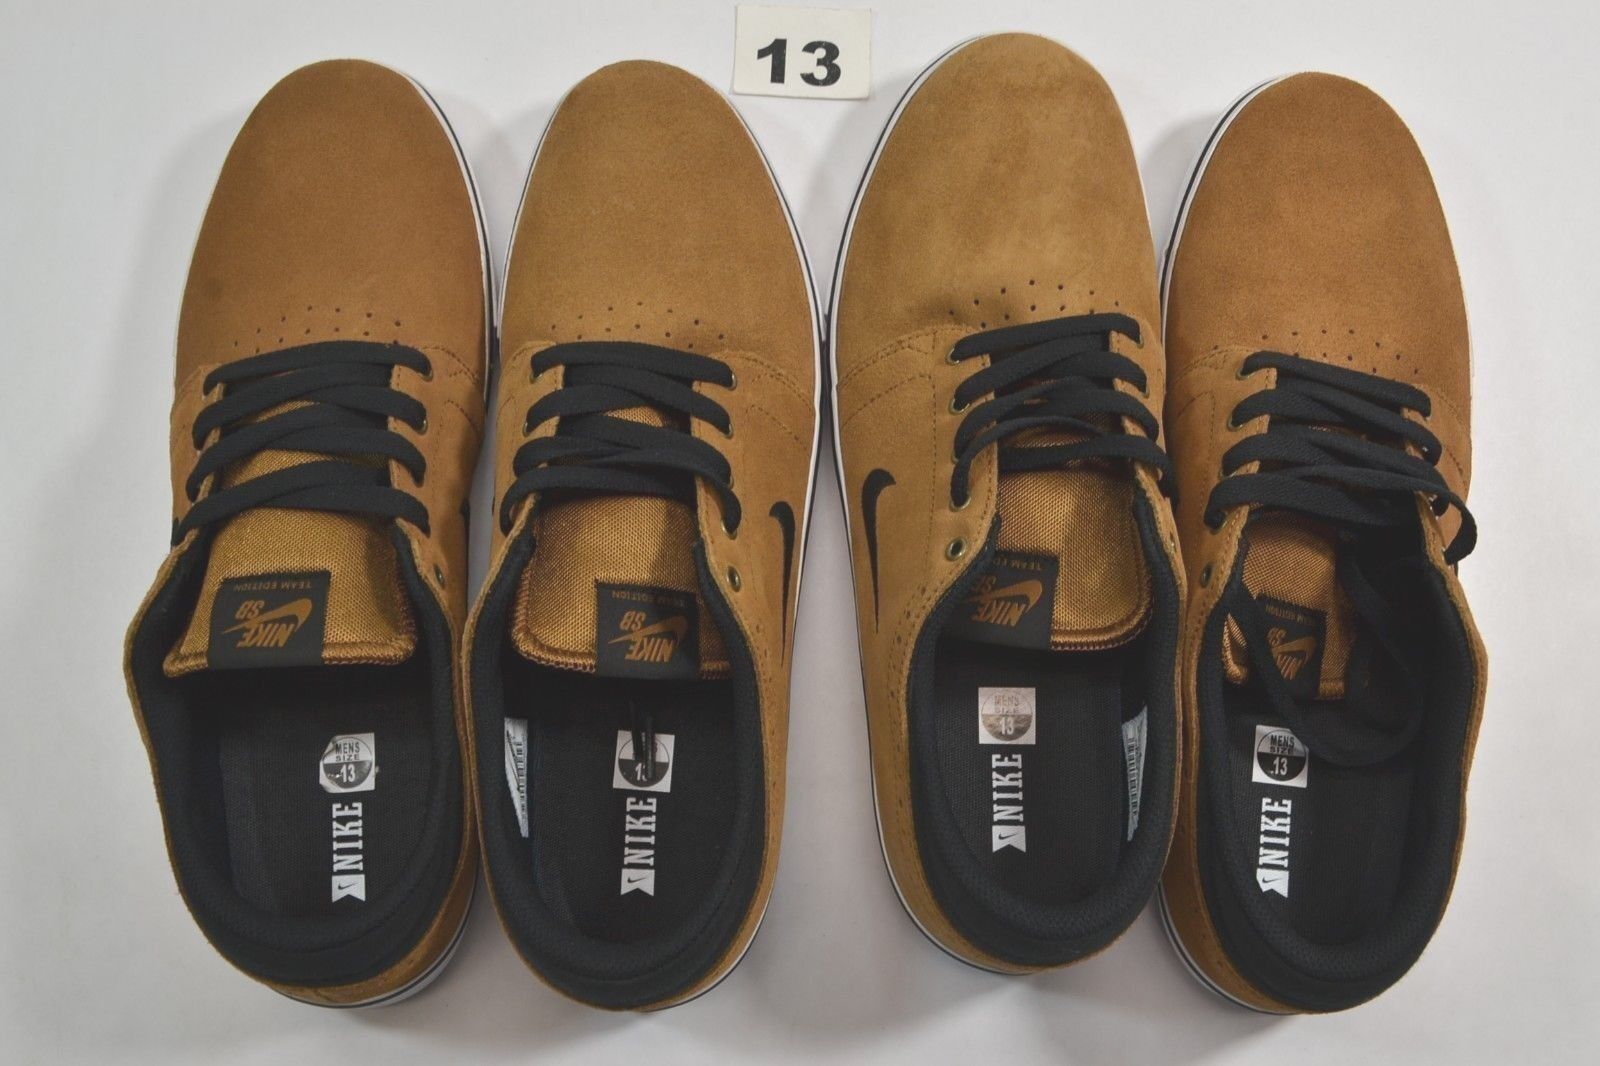 Nike SB TEAM EDITION Ale Discounted Brown noir blanc Suede Discounted Ale (297) homme chaussures de18d2